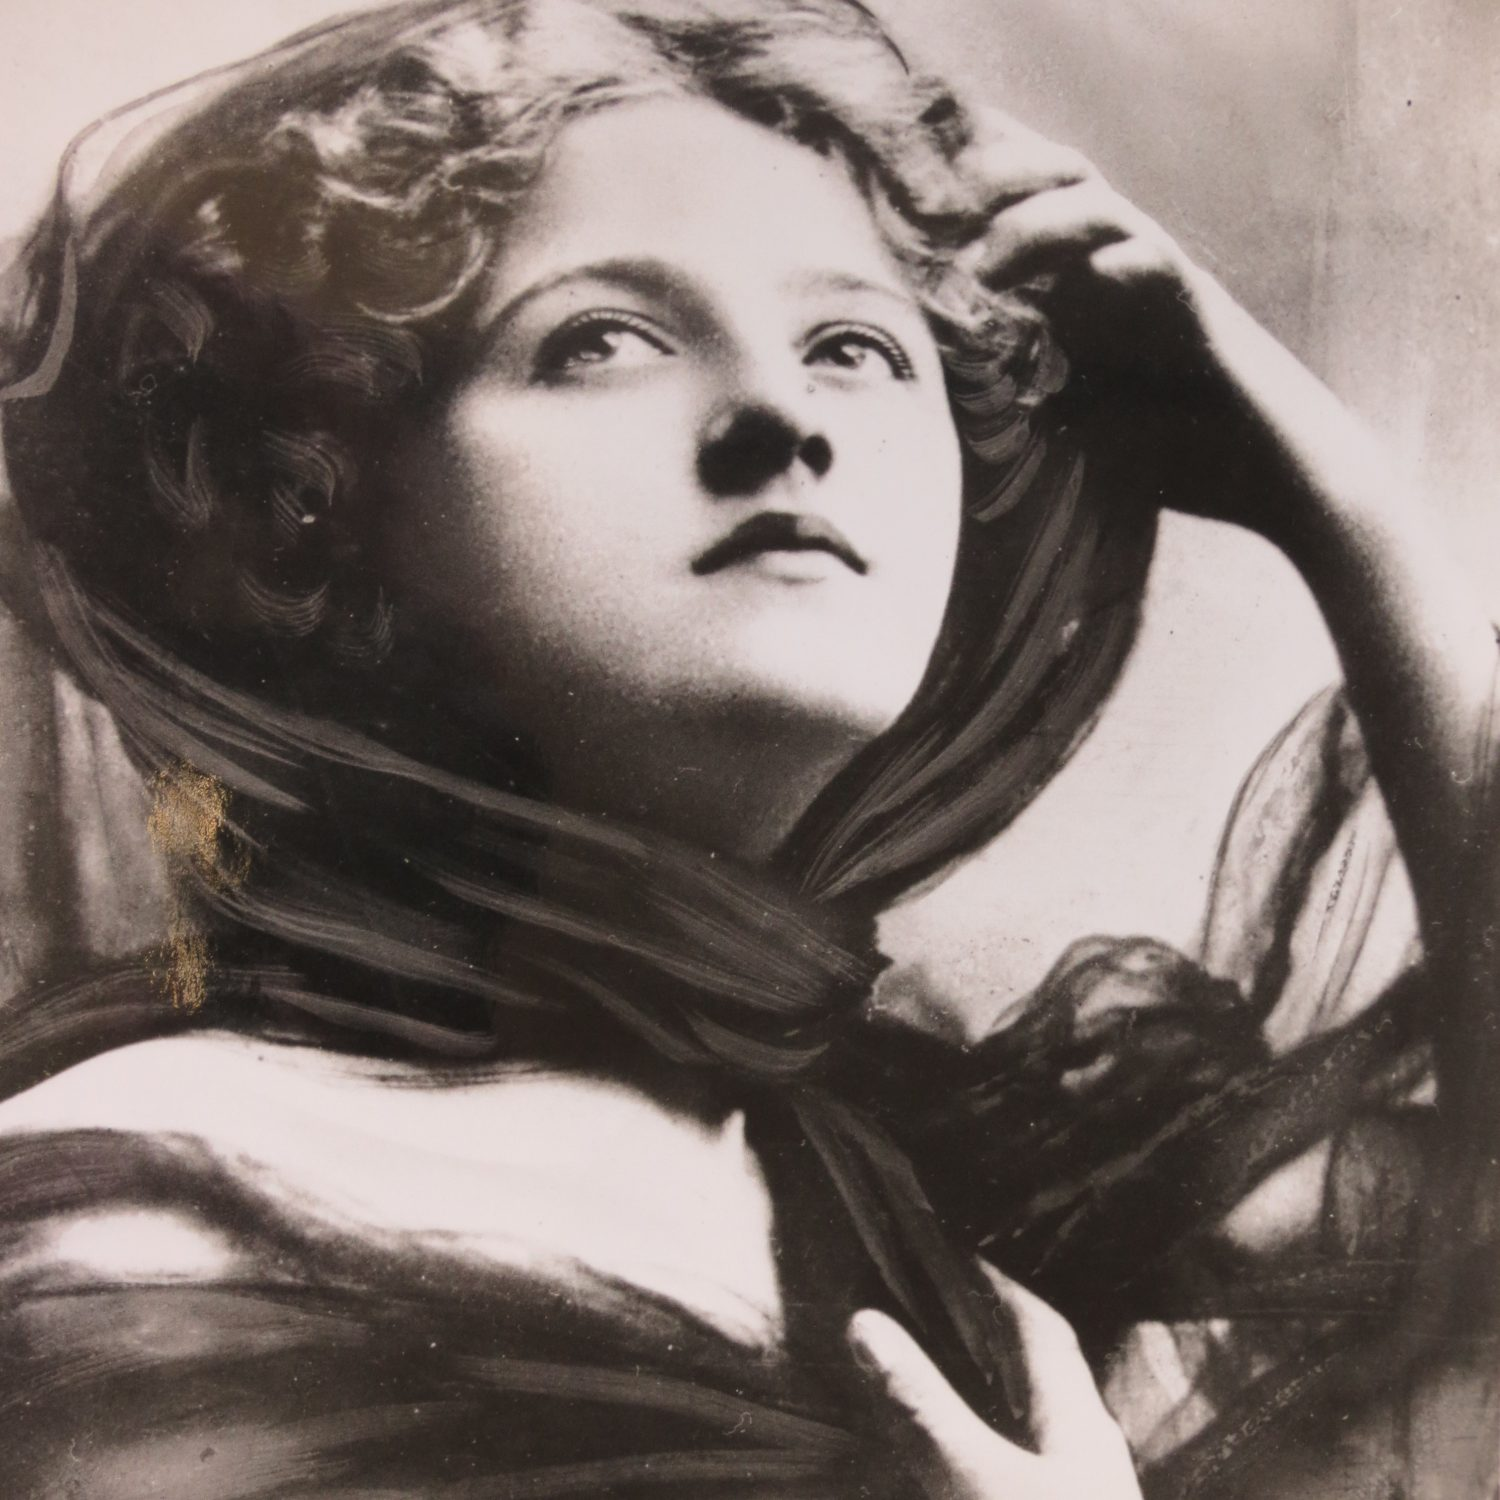 Head and shoulders picture of Ivy Close. She has a full face lit with light, looking upwards. She has a scarf over her full hairstyle coming down around her neck. She has her arms posed artistically with one on her head scarf the other on her chest